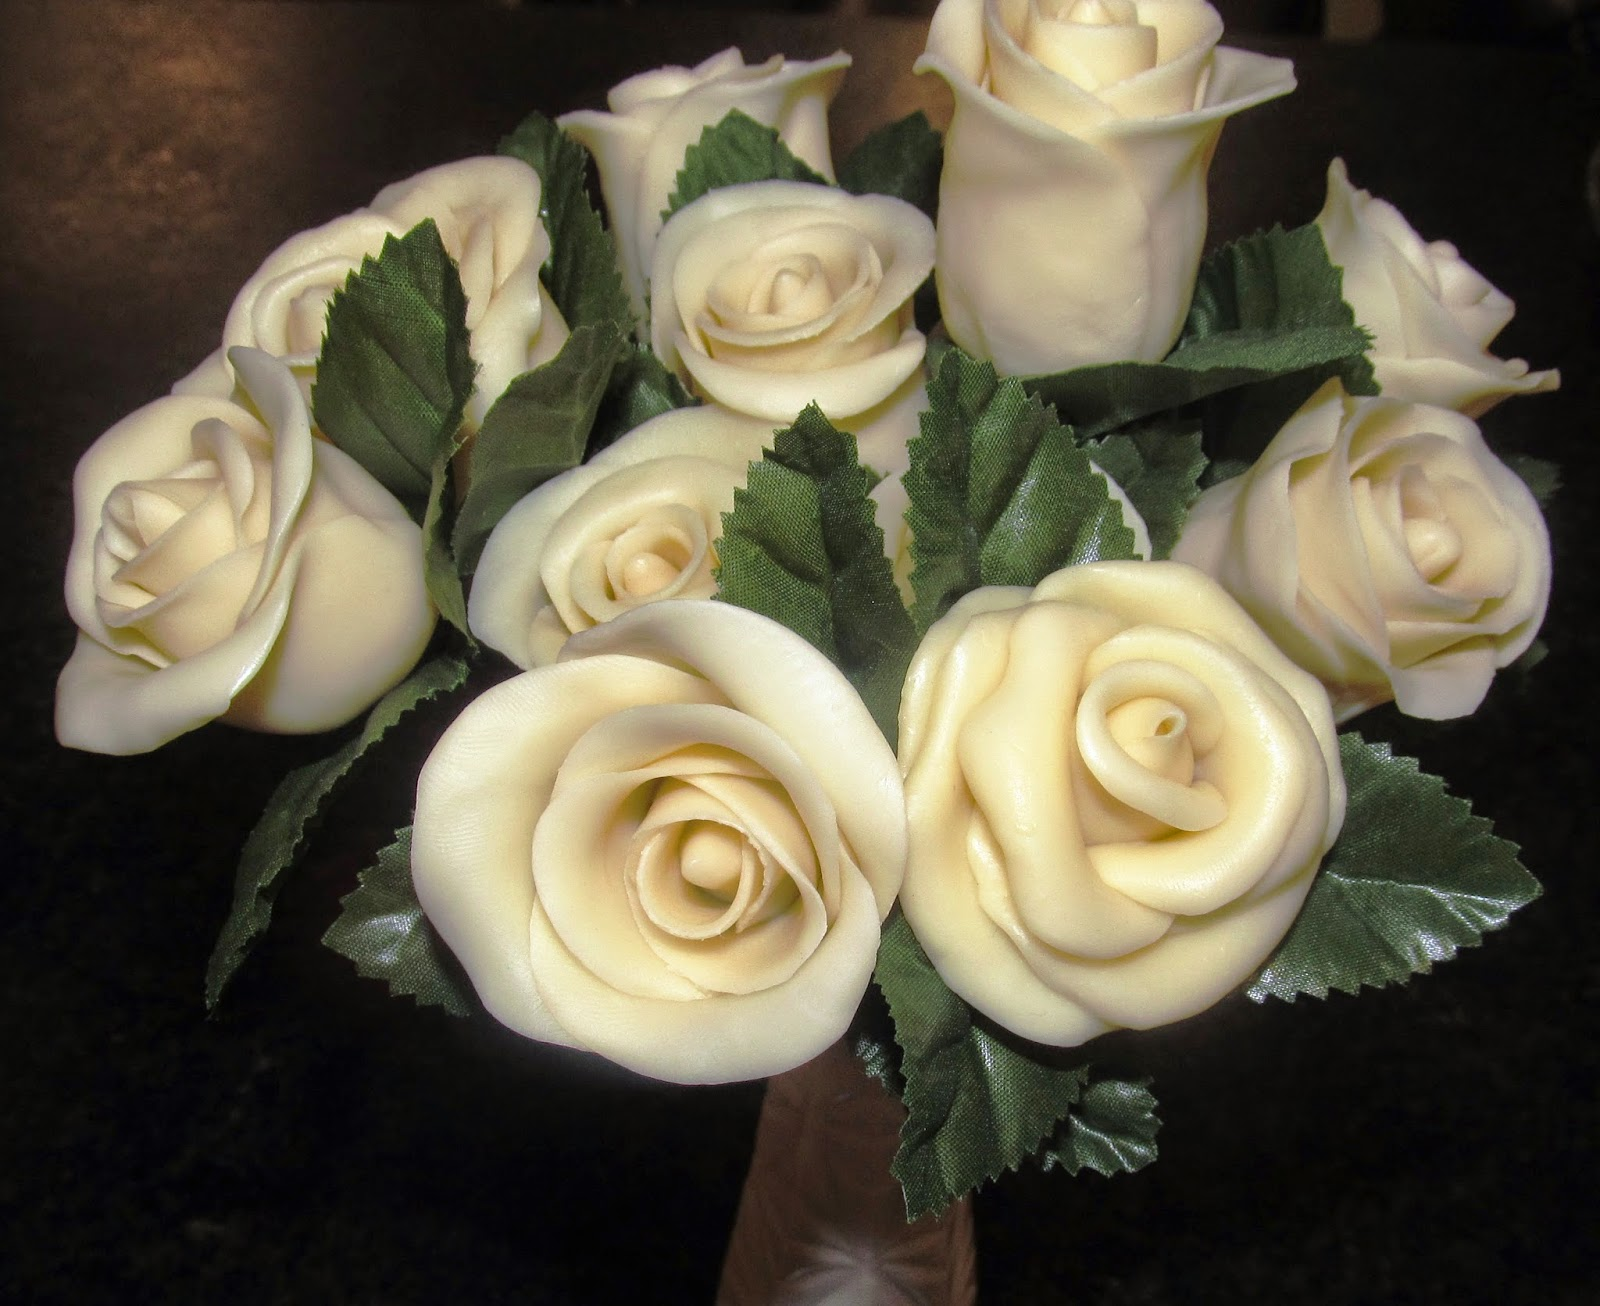 White Chocolate Roses For Mothers Day | Confessions & Reviews of a ...